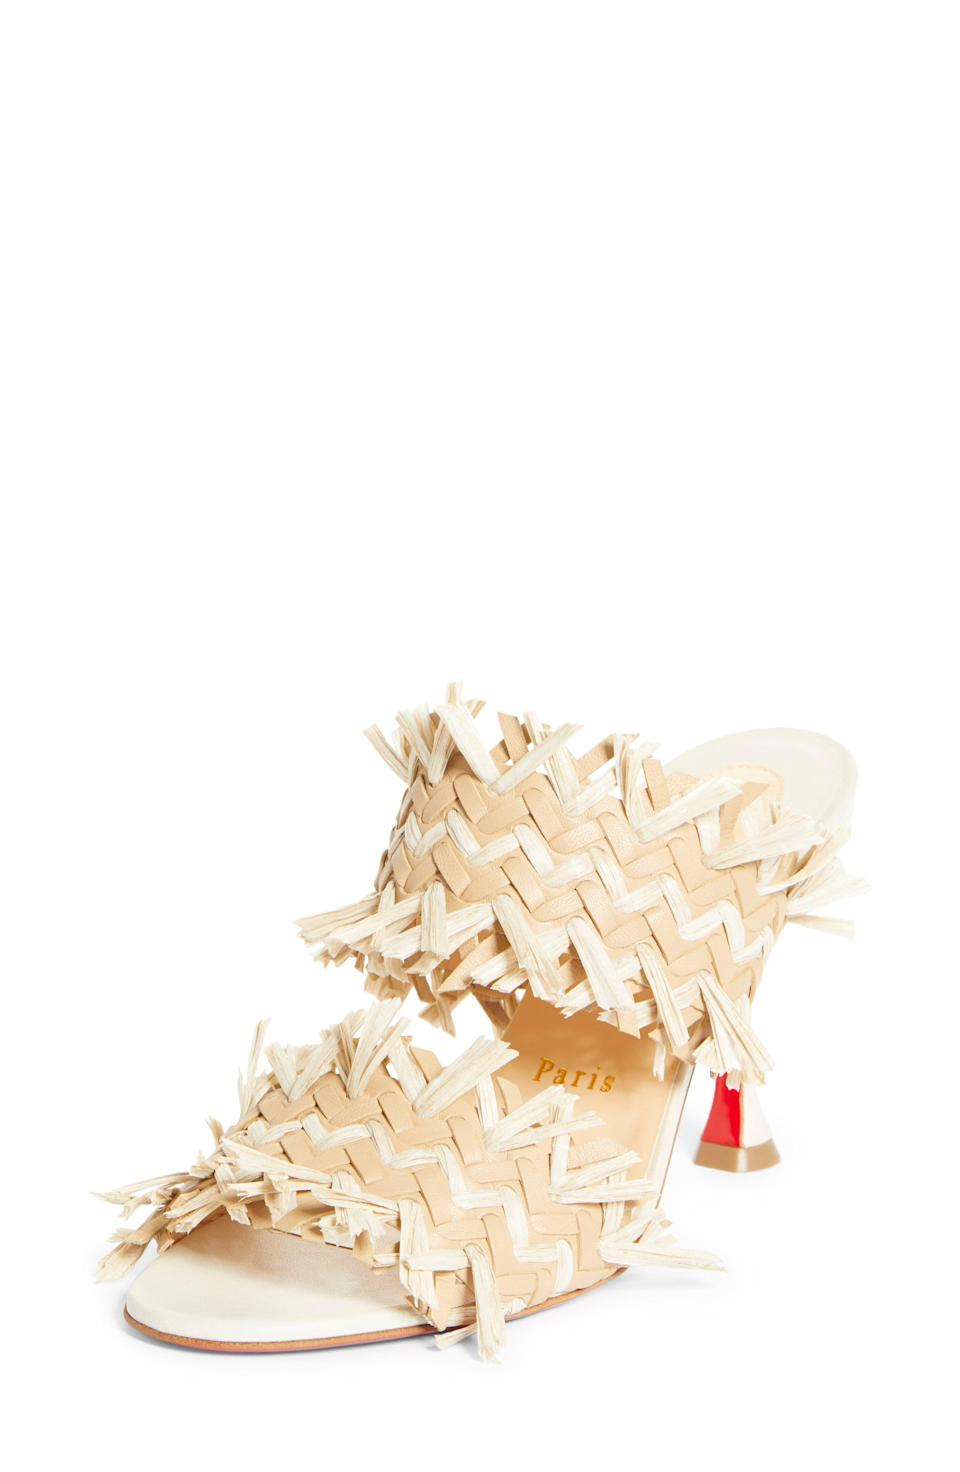 """<p><strong>Christian Louboutin </strong></p><p>nordstrom.com</p><p><strong>$795.00</strong></p><p><a href=""""https://go.redirectingat.com?id=74968X1596630&url=https%3A%2F%2Fwww.nordstrom.com%2Fs%2Fchristian-louboutin-meroine-double-band-sandal-women%2F5832489&sref=https%3A%2F%2Fwww.townandcountrymag.com%2Fstyle%2Ffashion-trends%2Fg36384322%2Fbest-sandals-for-women%2F"""" rel=""""nofollow noopener"""" target=""""_blank"""" data-ylk=""""slk:Shop Now"""" class=""""link rapid-noclick-resp"""">Shop Now</a></p><p>Woven raffia adds a playful, summery touch to these heeled sandals. </p>"""